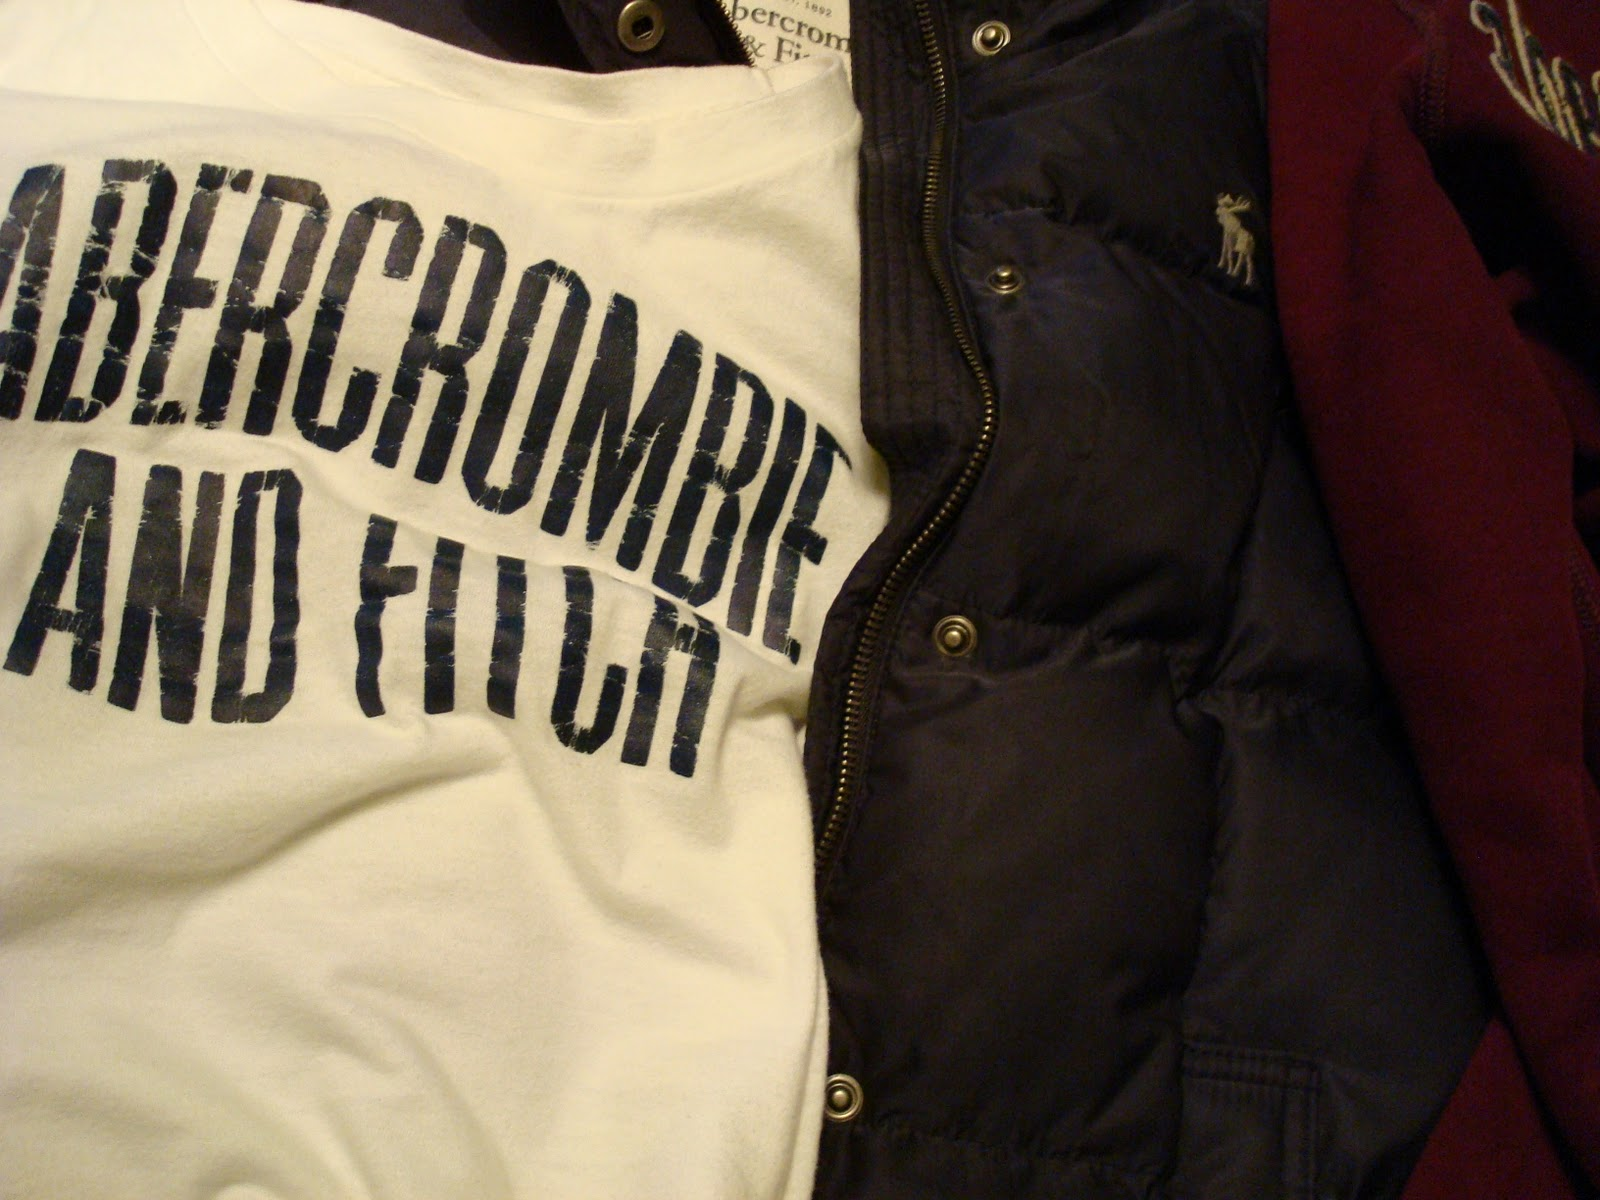 abercrombie and fitch s expansion process Abercrombie and fitch were founded in 1892 by david t abercrombie and offered prestigious expansion plans in canada, europe and asia means that profits are to increase as well as brand however one of abercrombie & fitch's strengths is that they have the ability to catch their target.